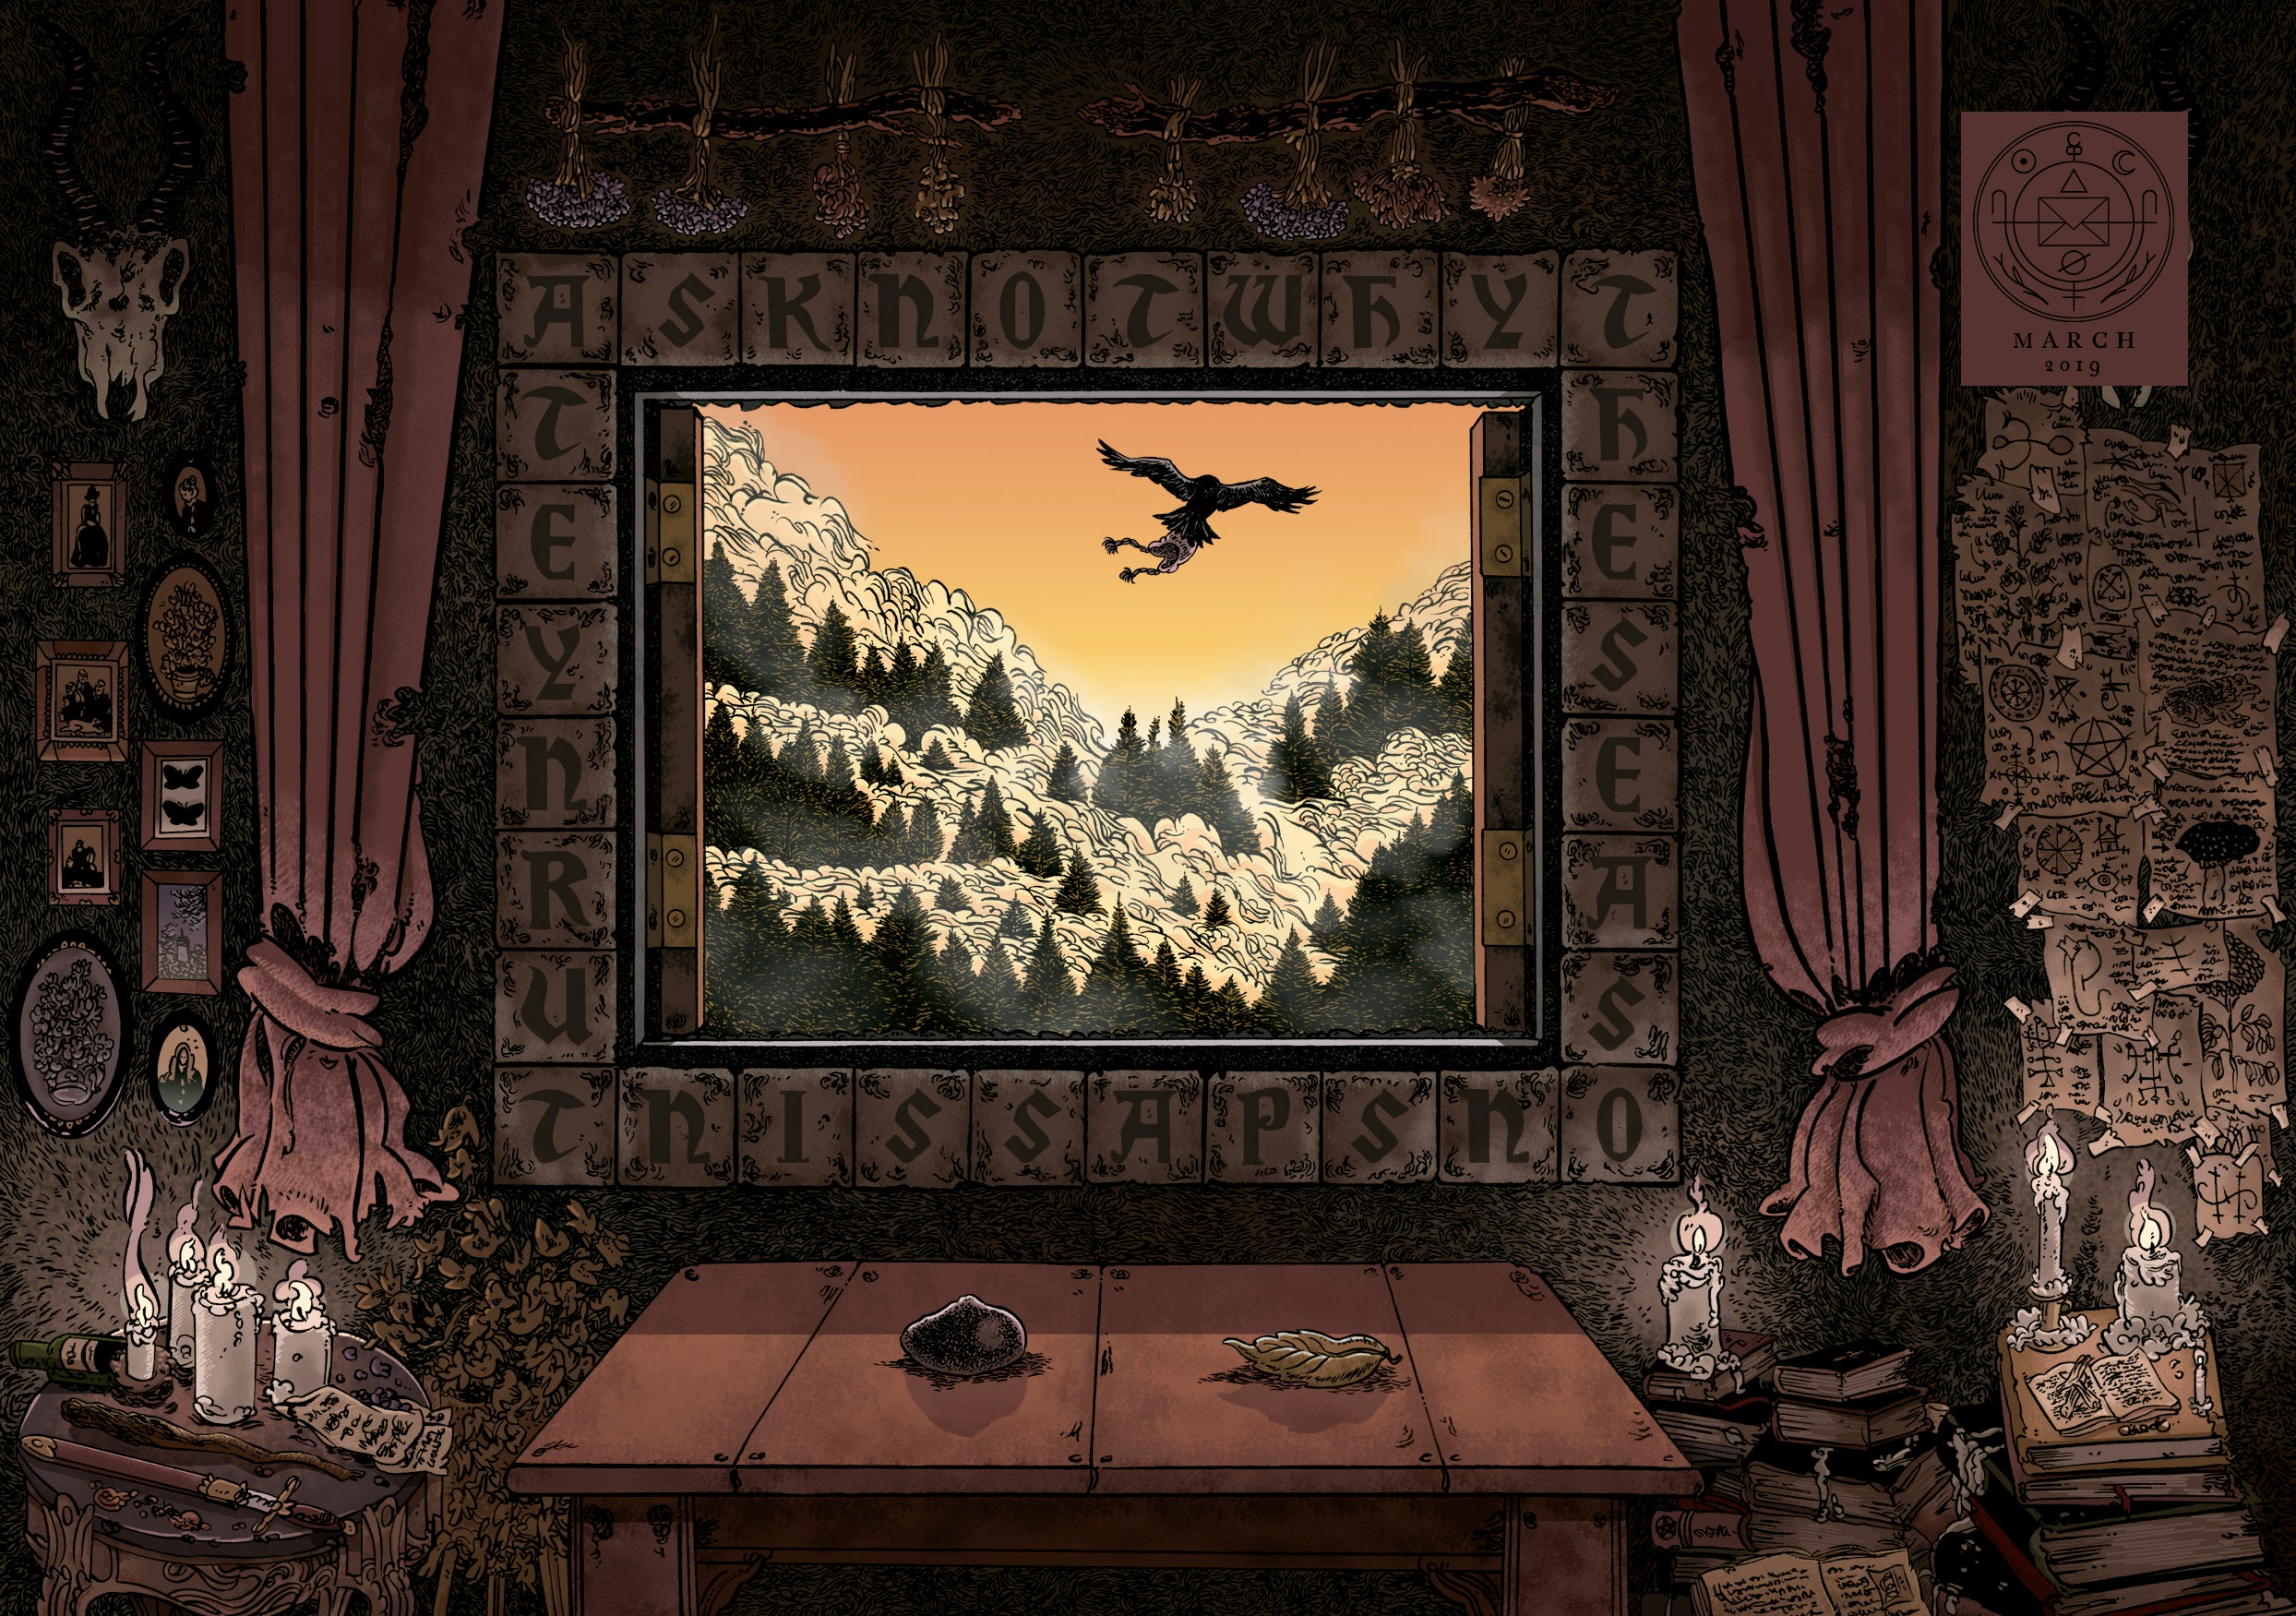 Otto and The Thief: The Stone Leaves: Cryptogram Puzzle Post 2.1 (T.O.S.) -  Cryptogram Puzzle Post